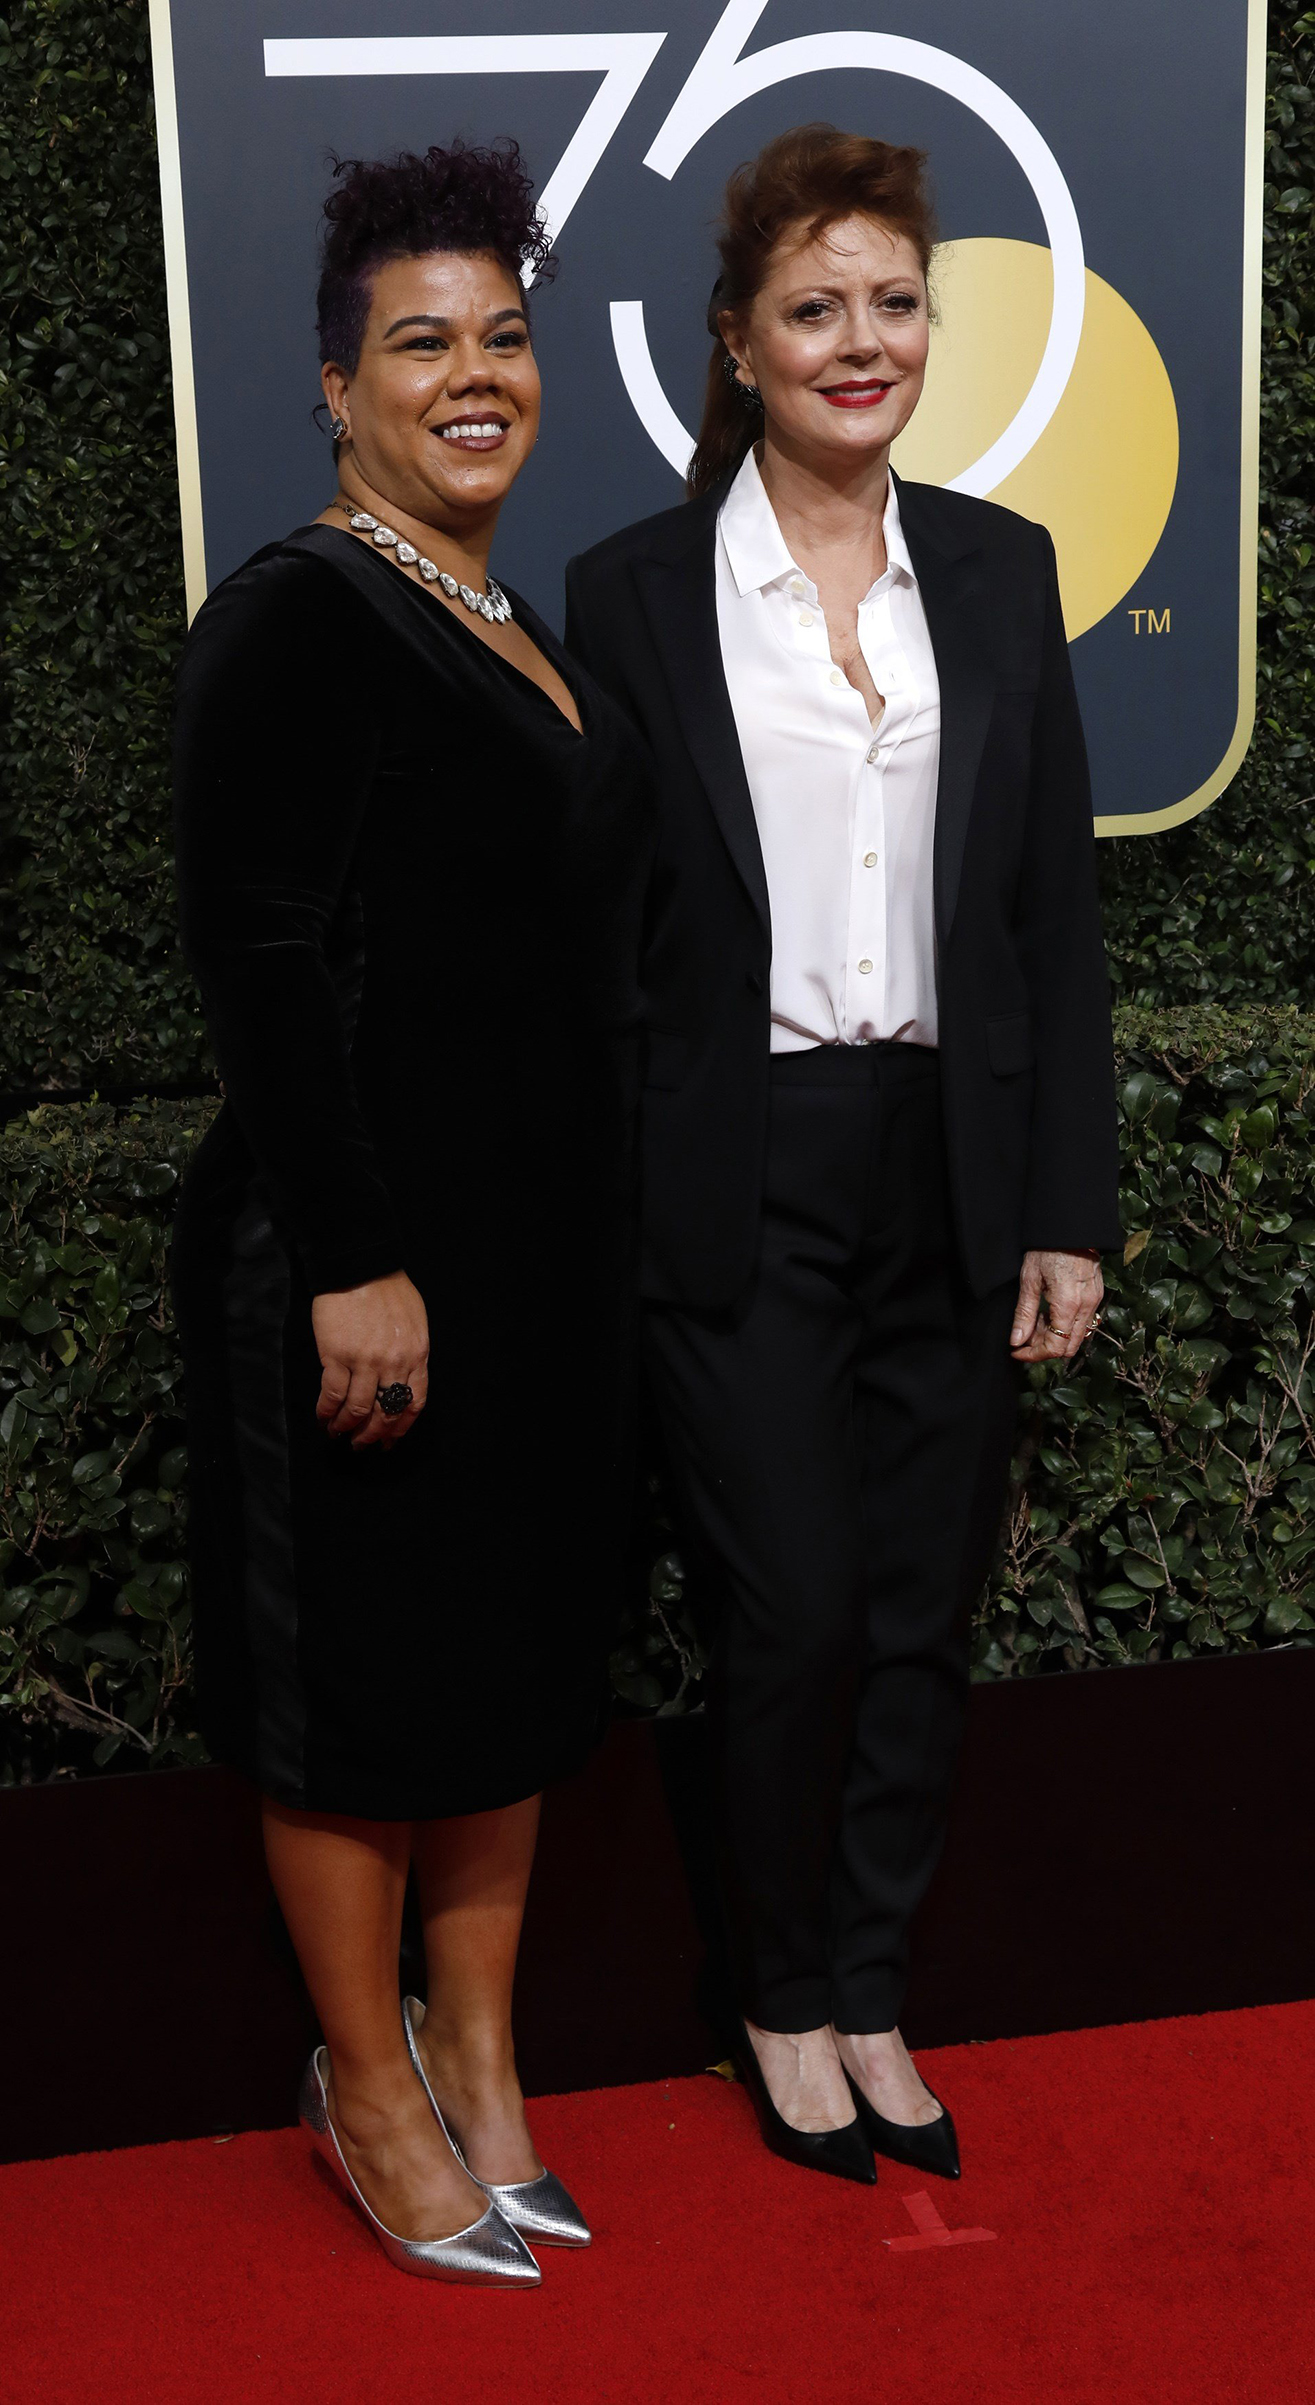 Activist Rosa Clemente and actress Susan Sarandon at the 75th annual Golden Globes, Beverly Hills, Calif, Jan. 7, 2018.